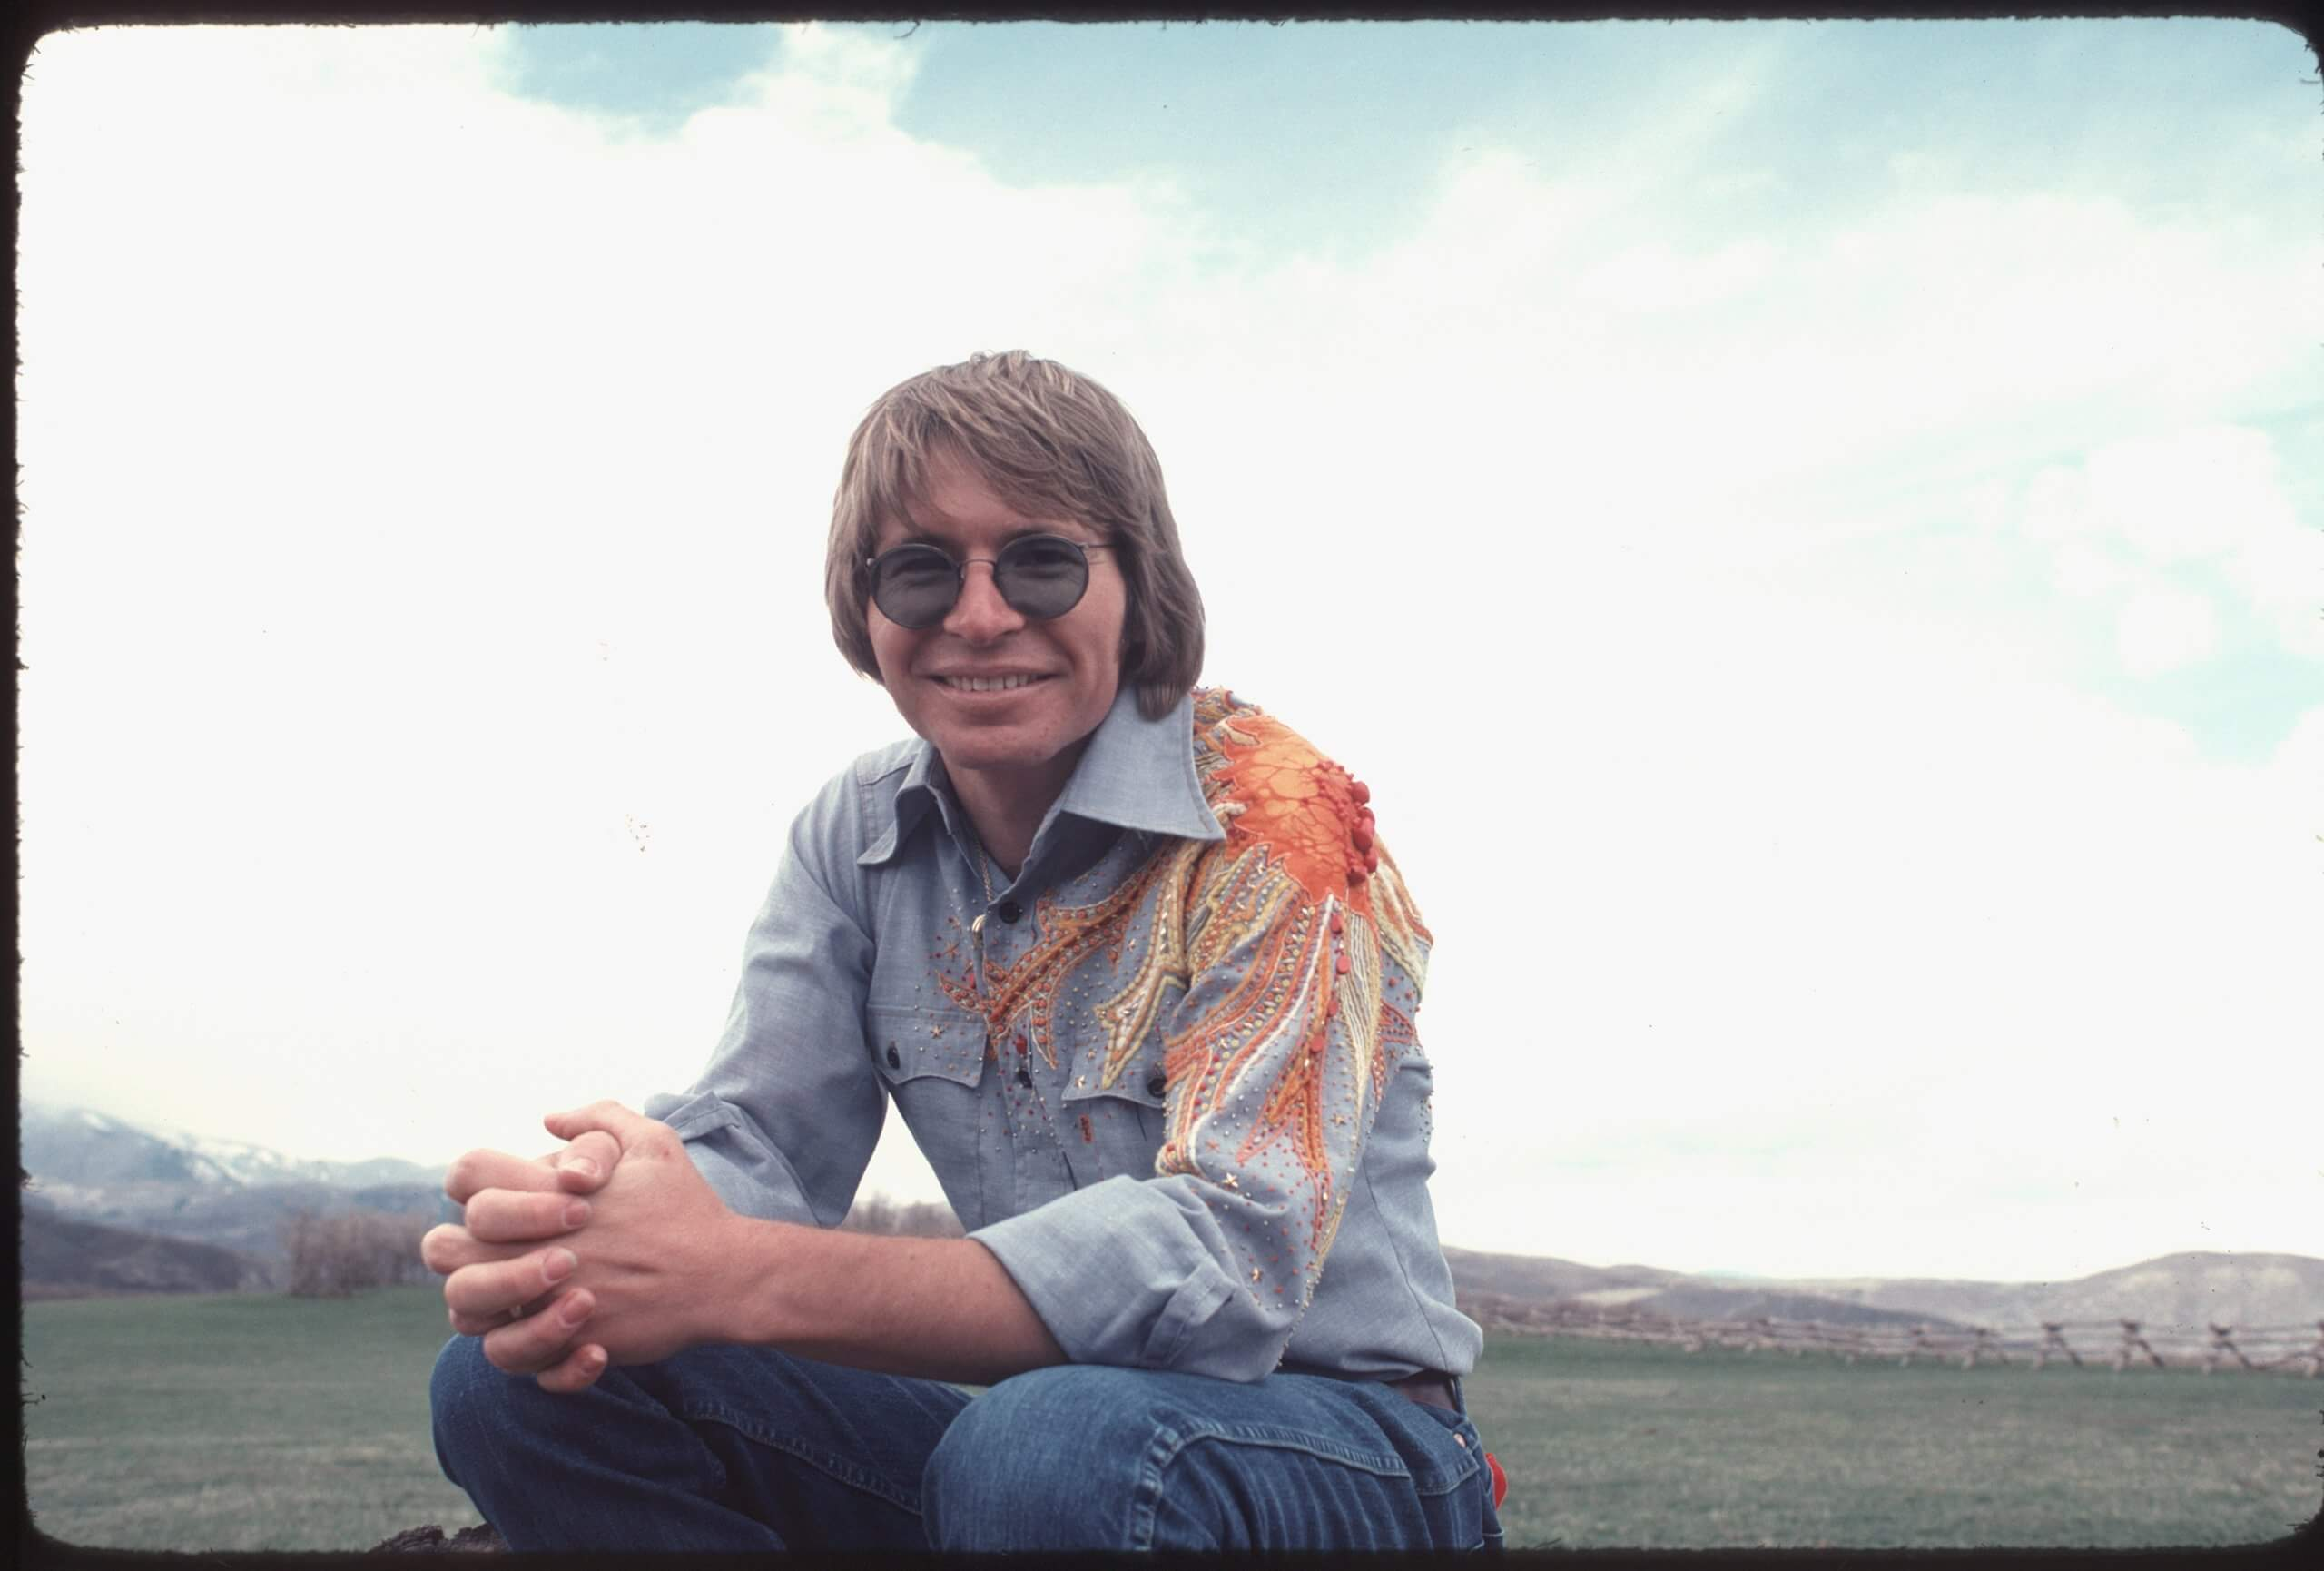 Revisit: Rhymes & Reasons: The Music of John Denver